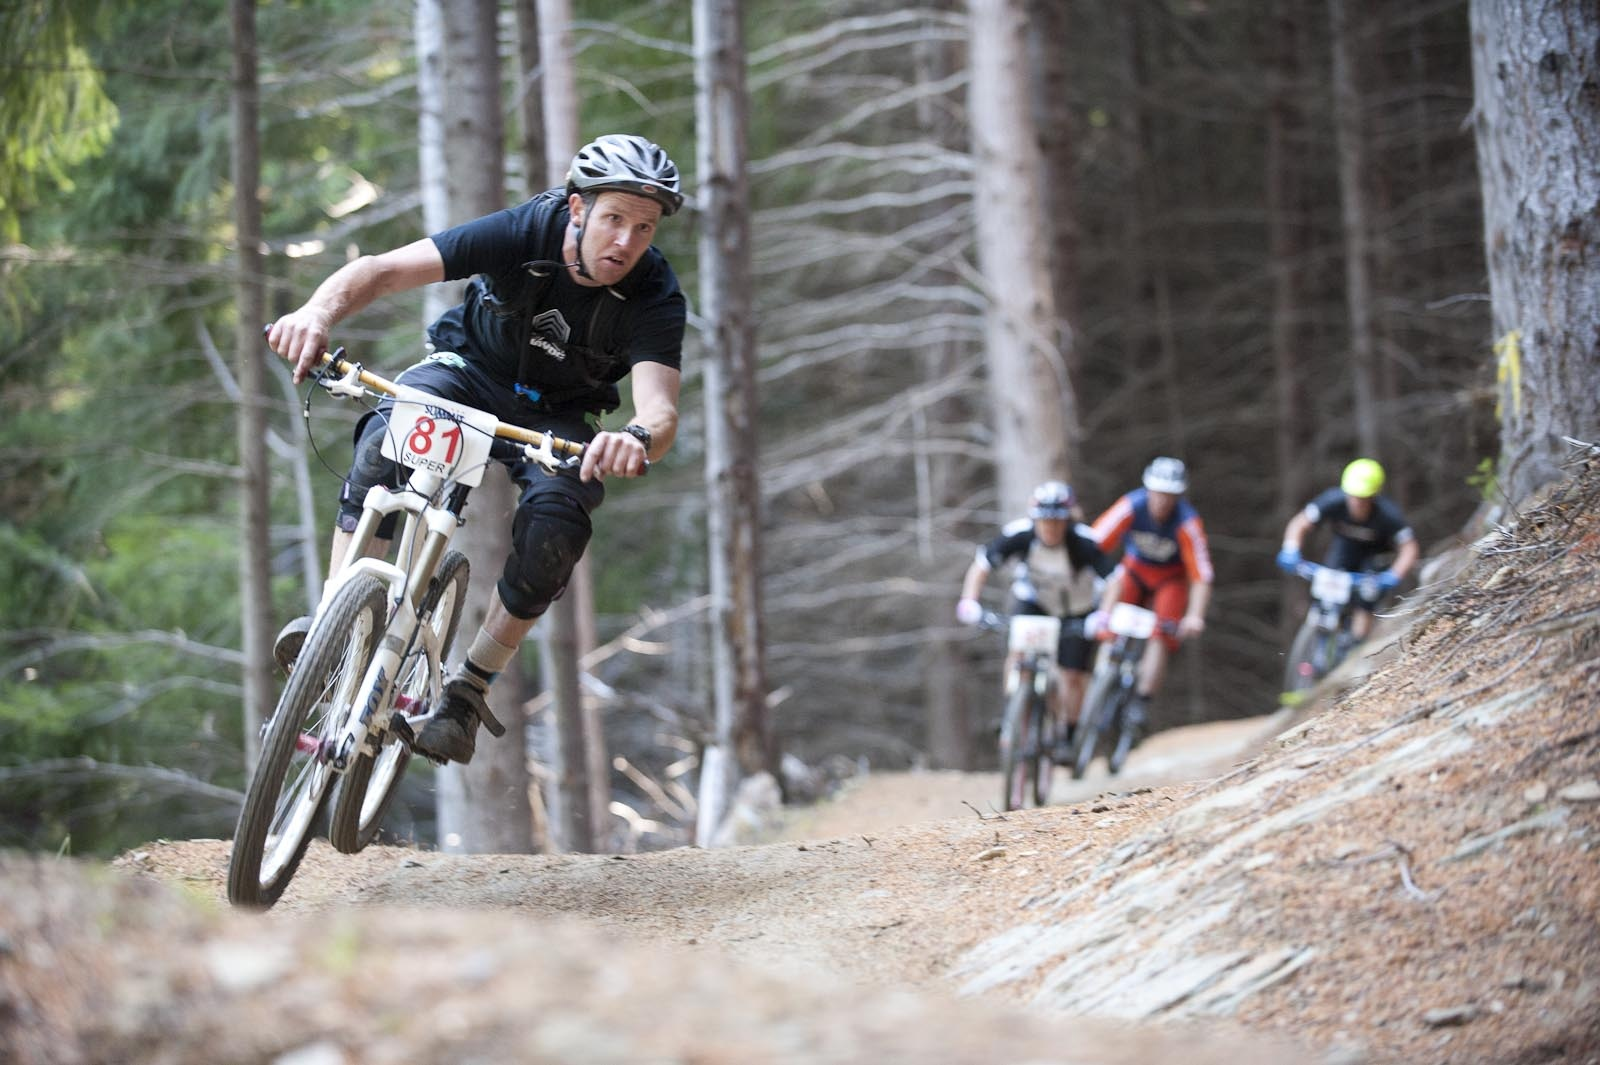 Racers compete in the Mountain Bike Super D race at the 2012 Queenstown Bike Festival